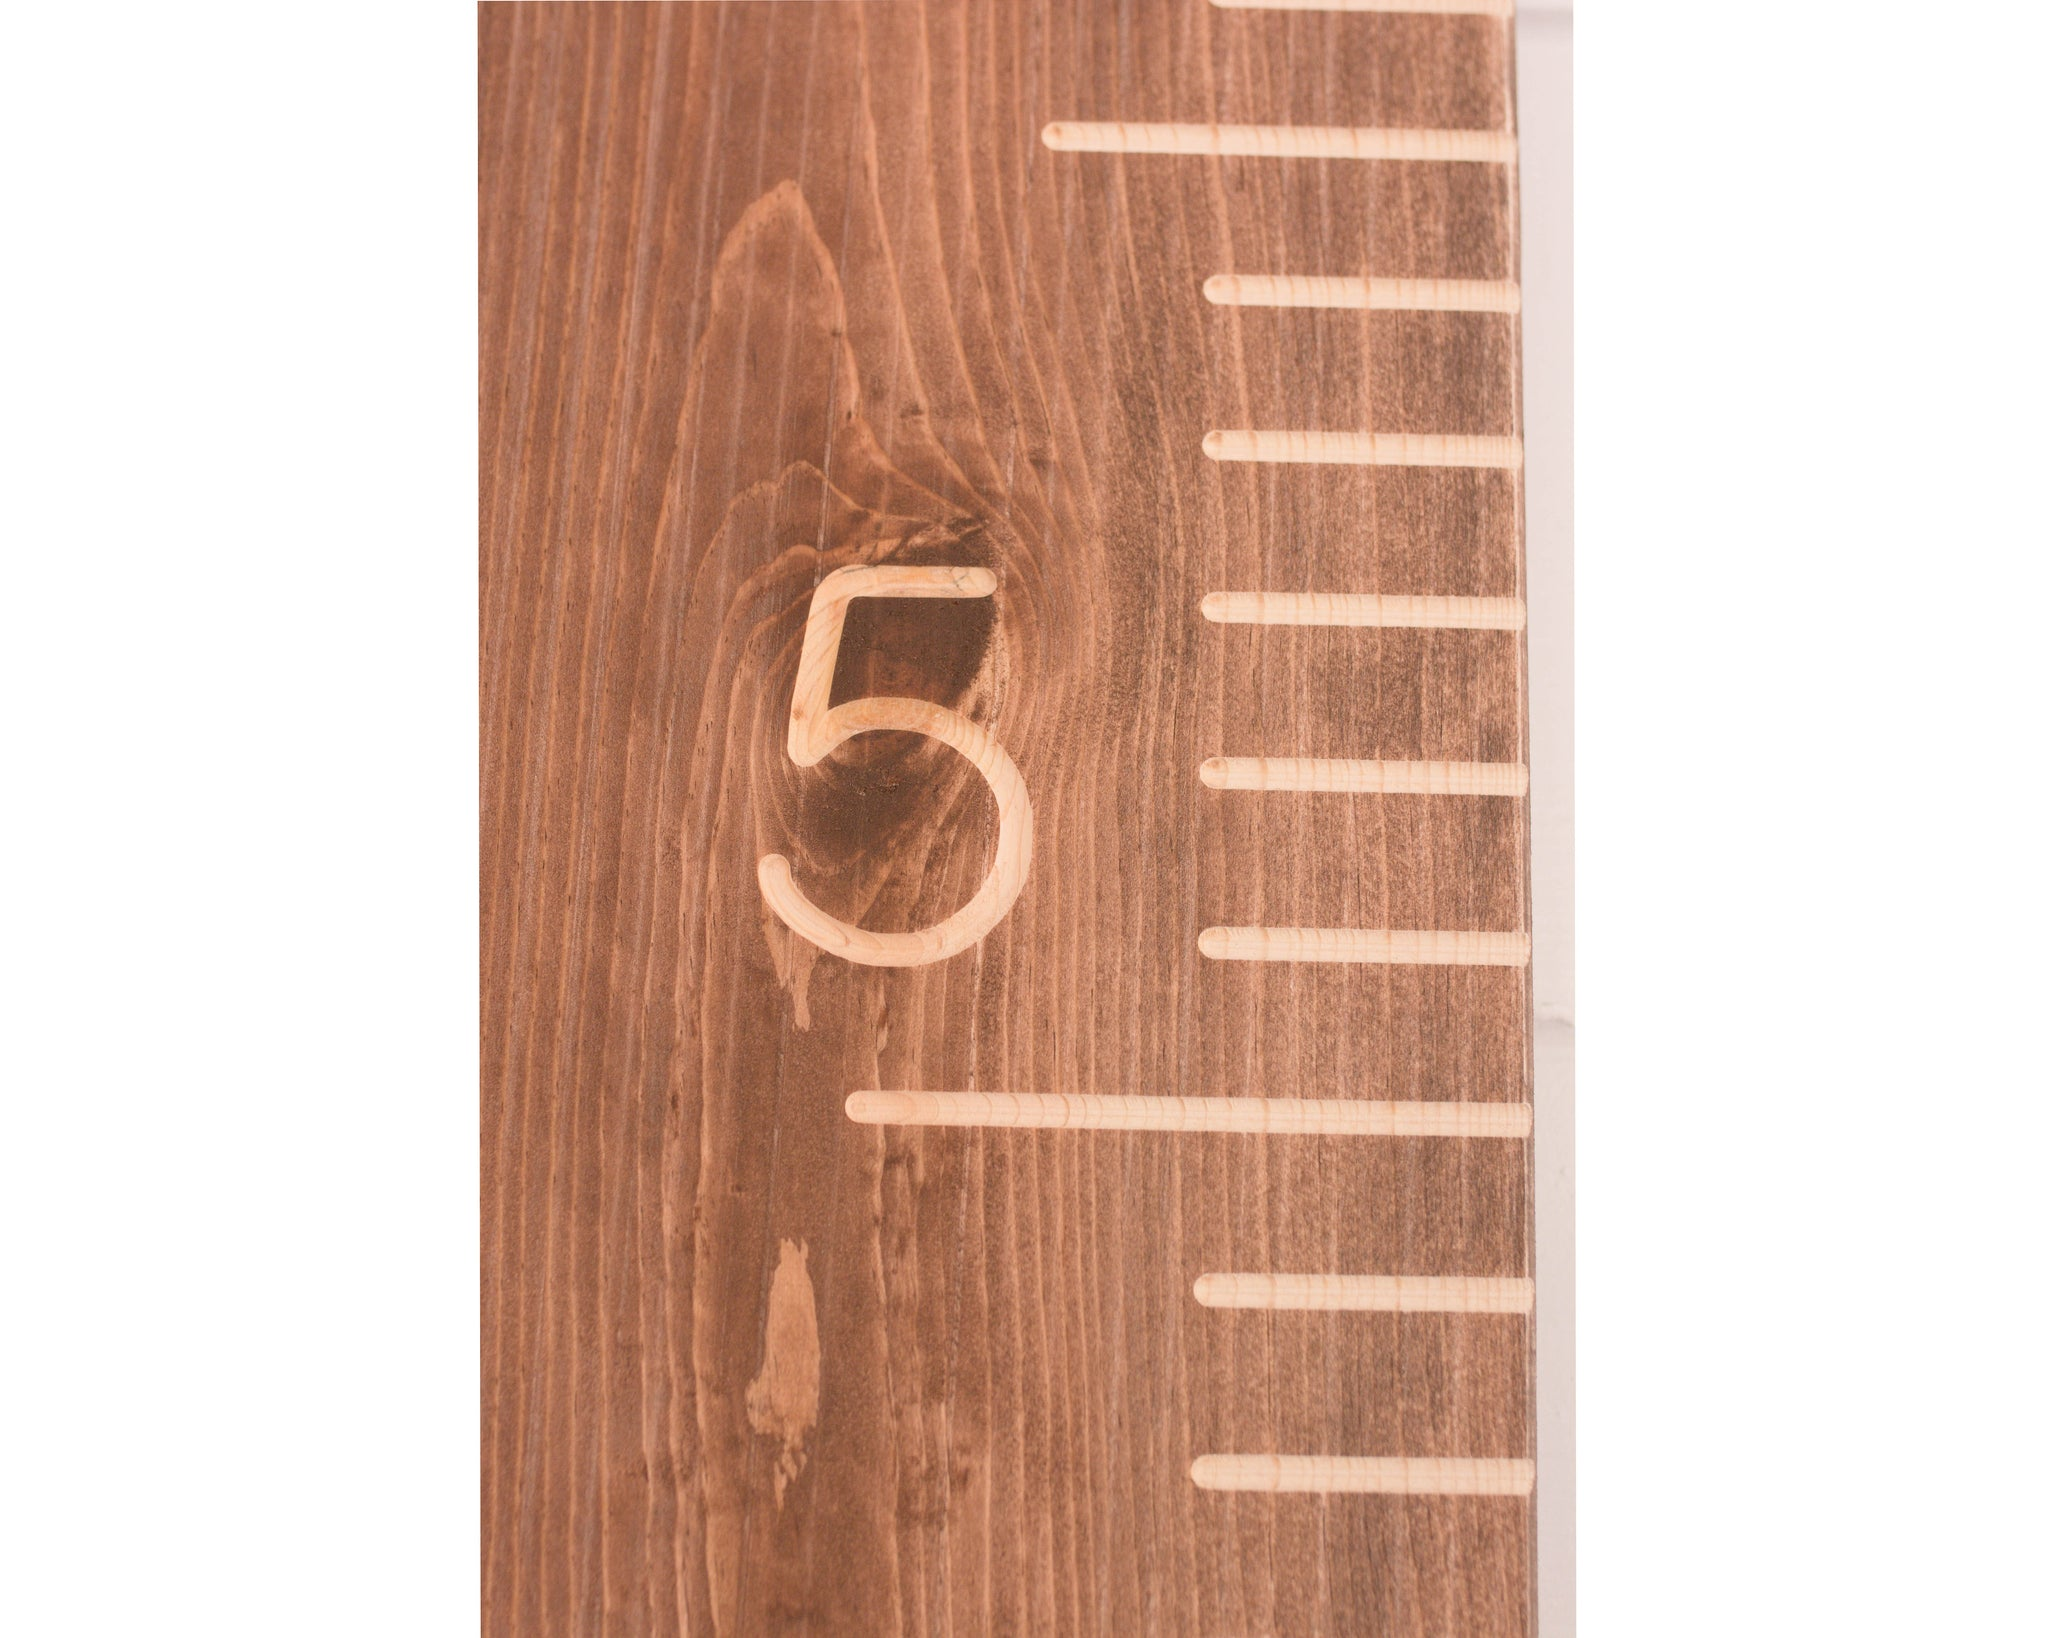 Walnut Carved Growth Chart Oversized Wooden Ruler Growth Chart